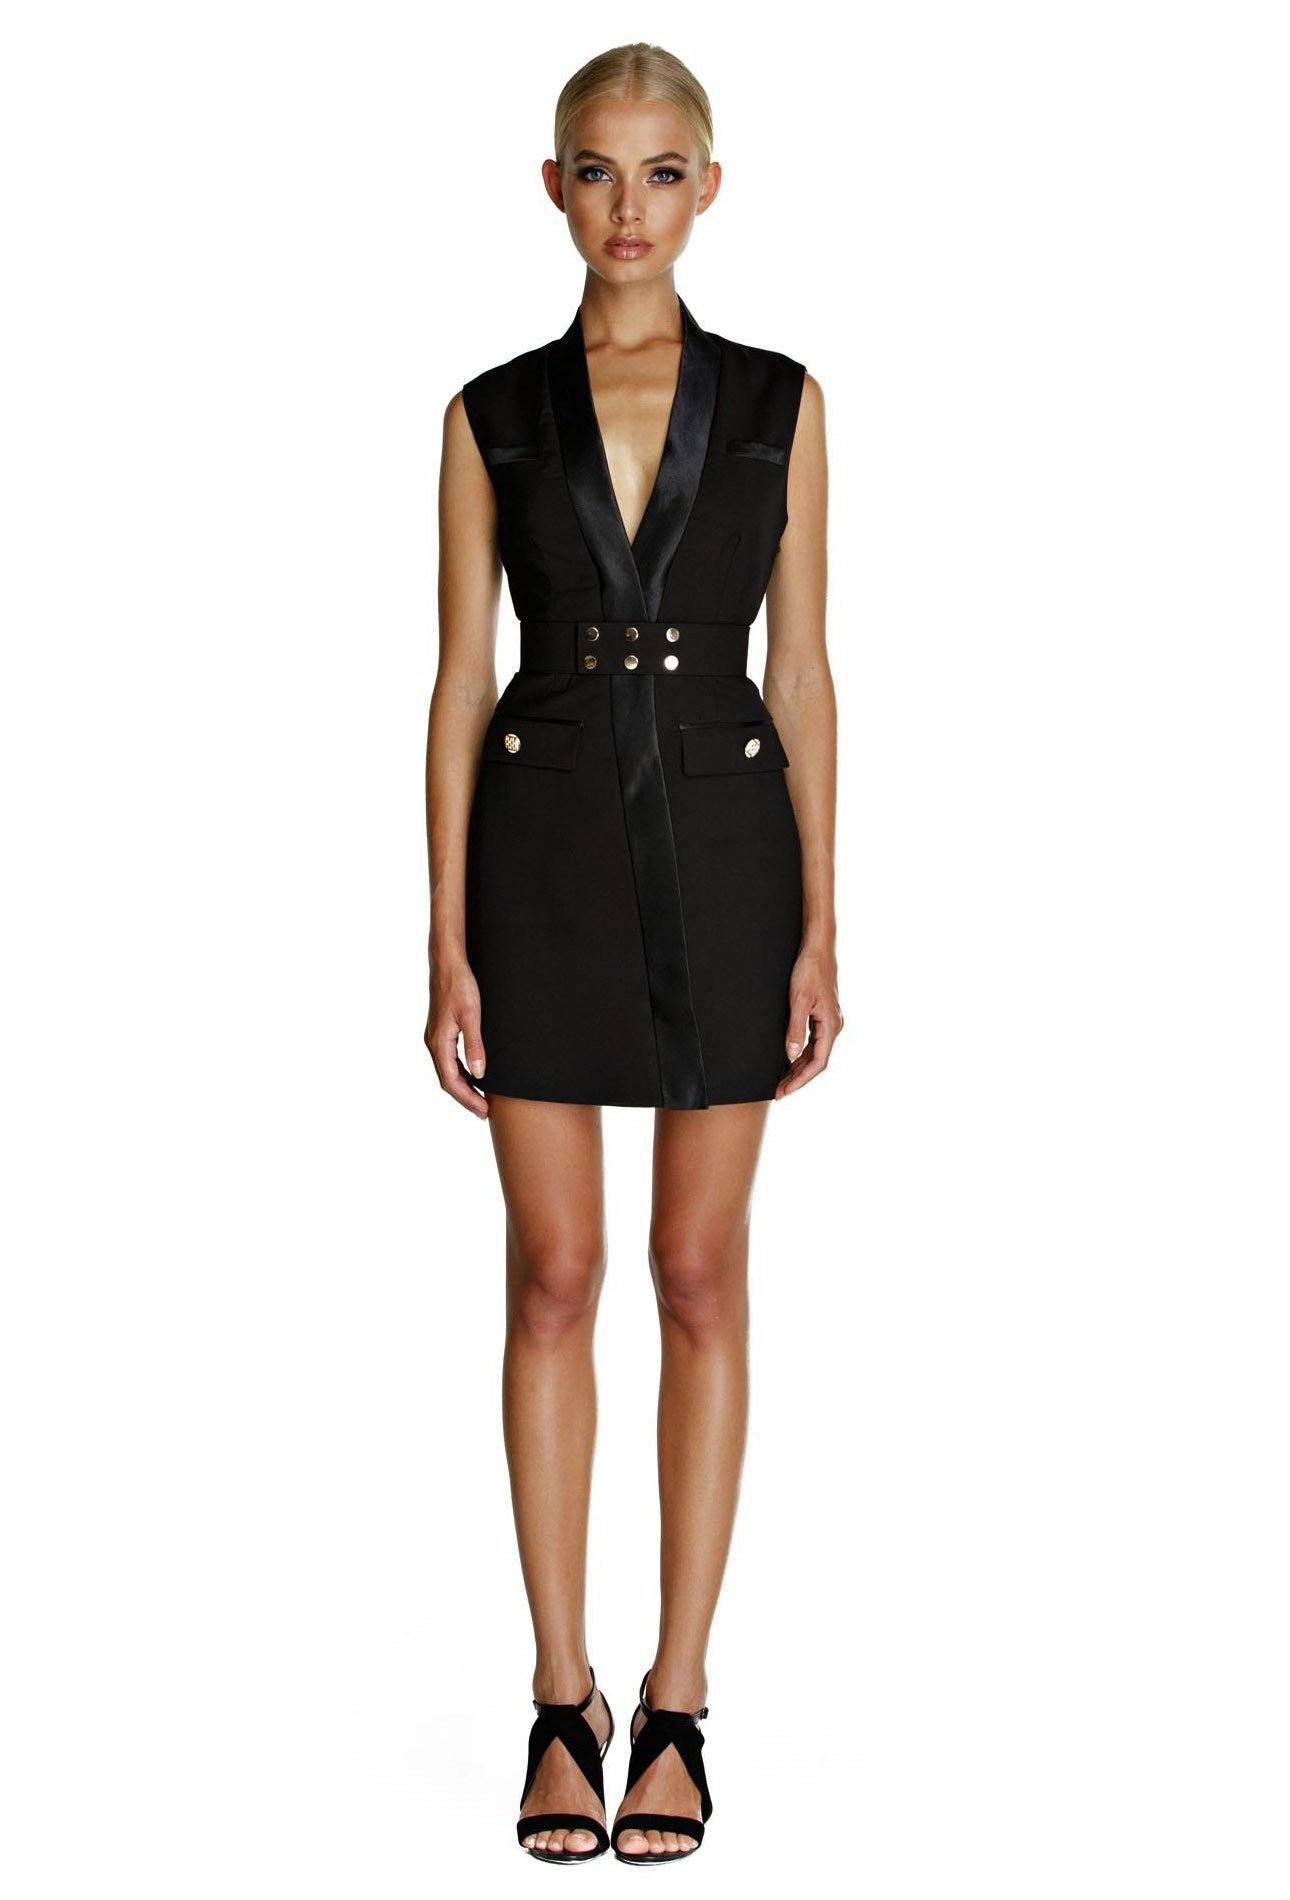 Black sleeveless blazer above knee length dress featuring gold belt, gold buttons and semi low plunge neckline